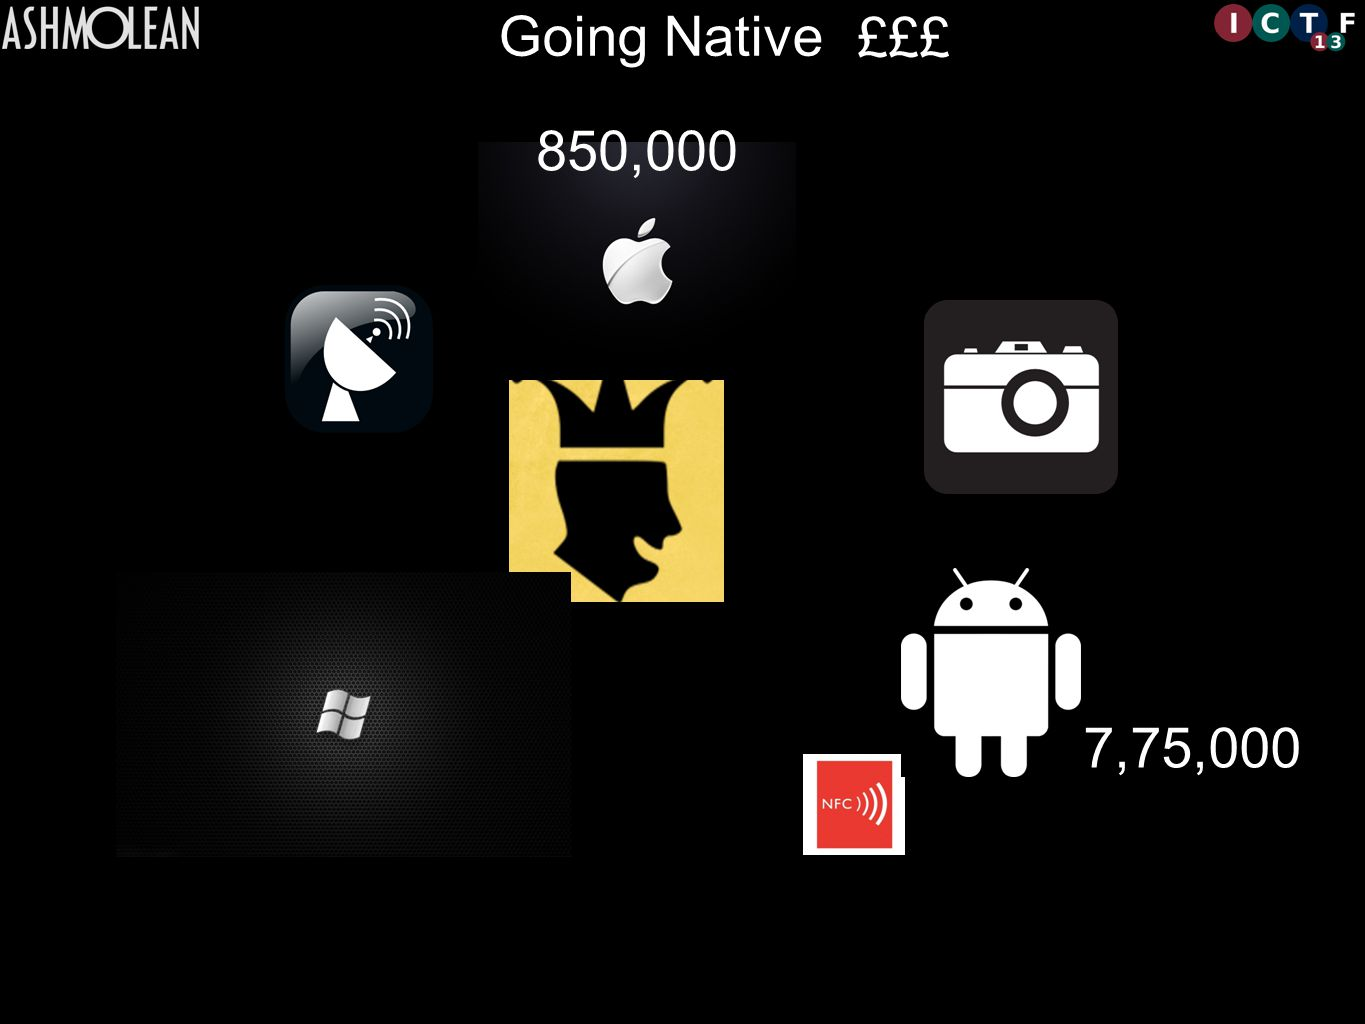 Going Native 7,75,000 850,000 £££